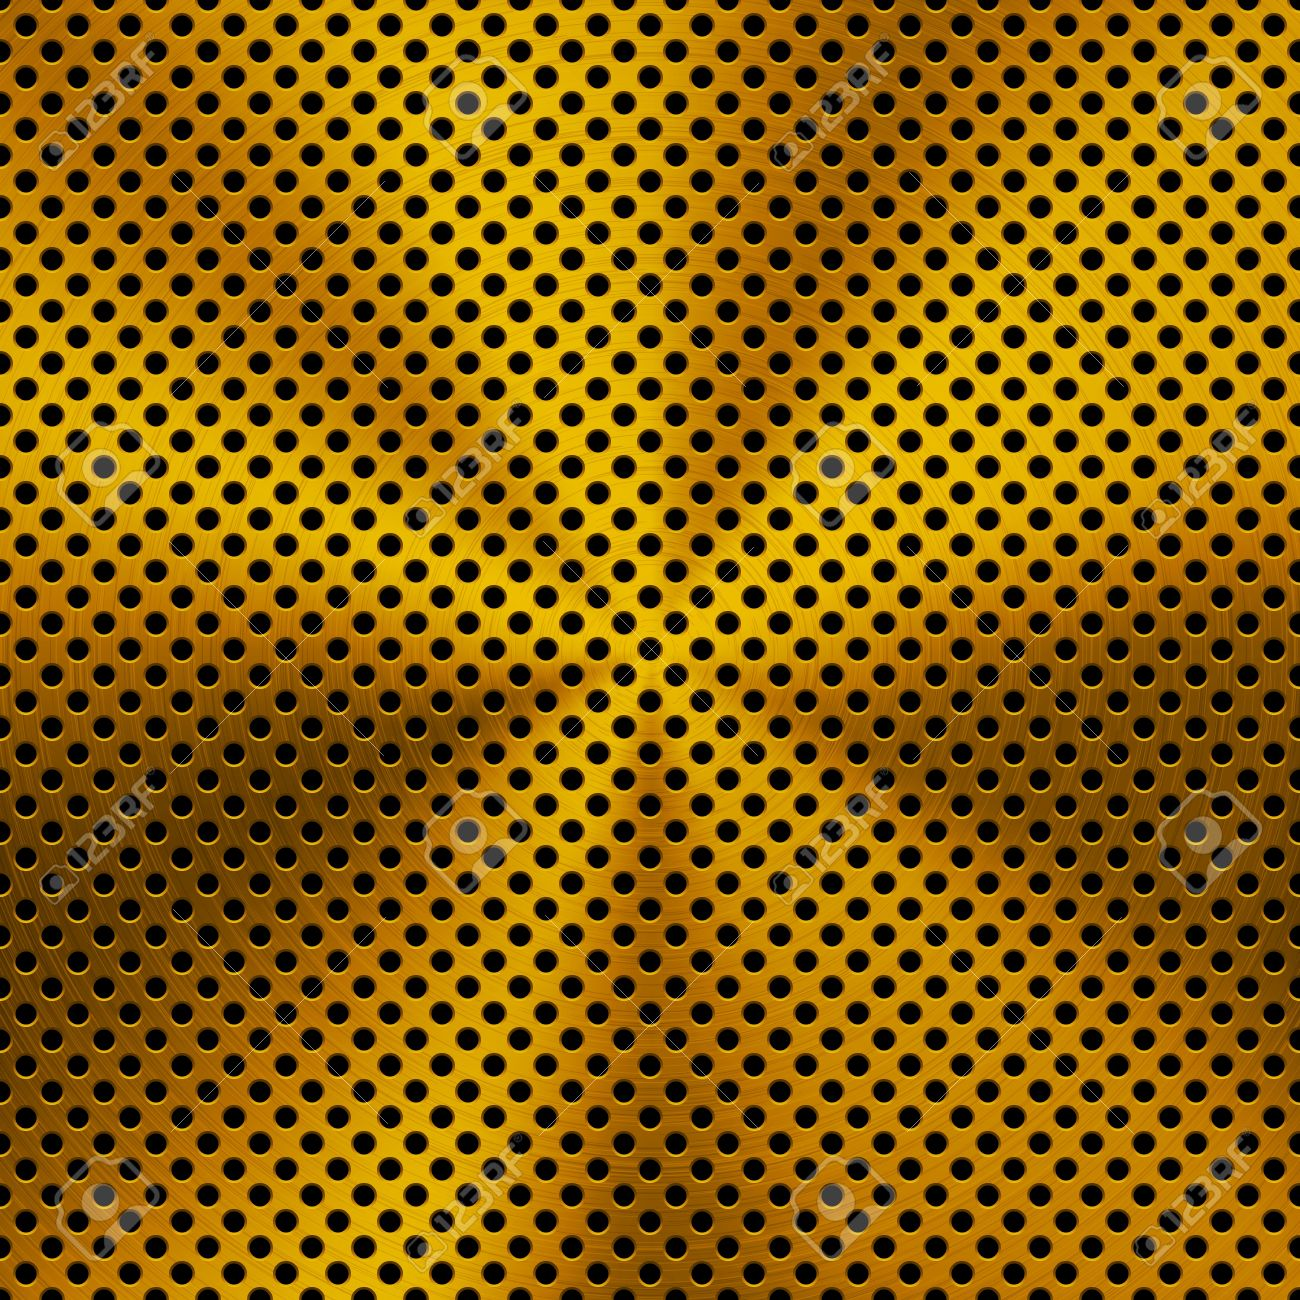 Gold metal background with seamless realistic circular brushed